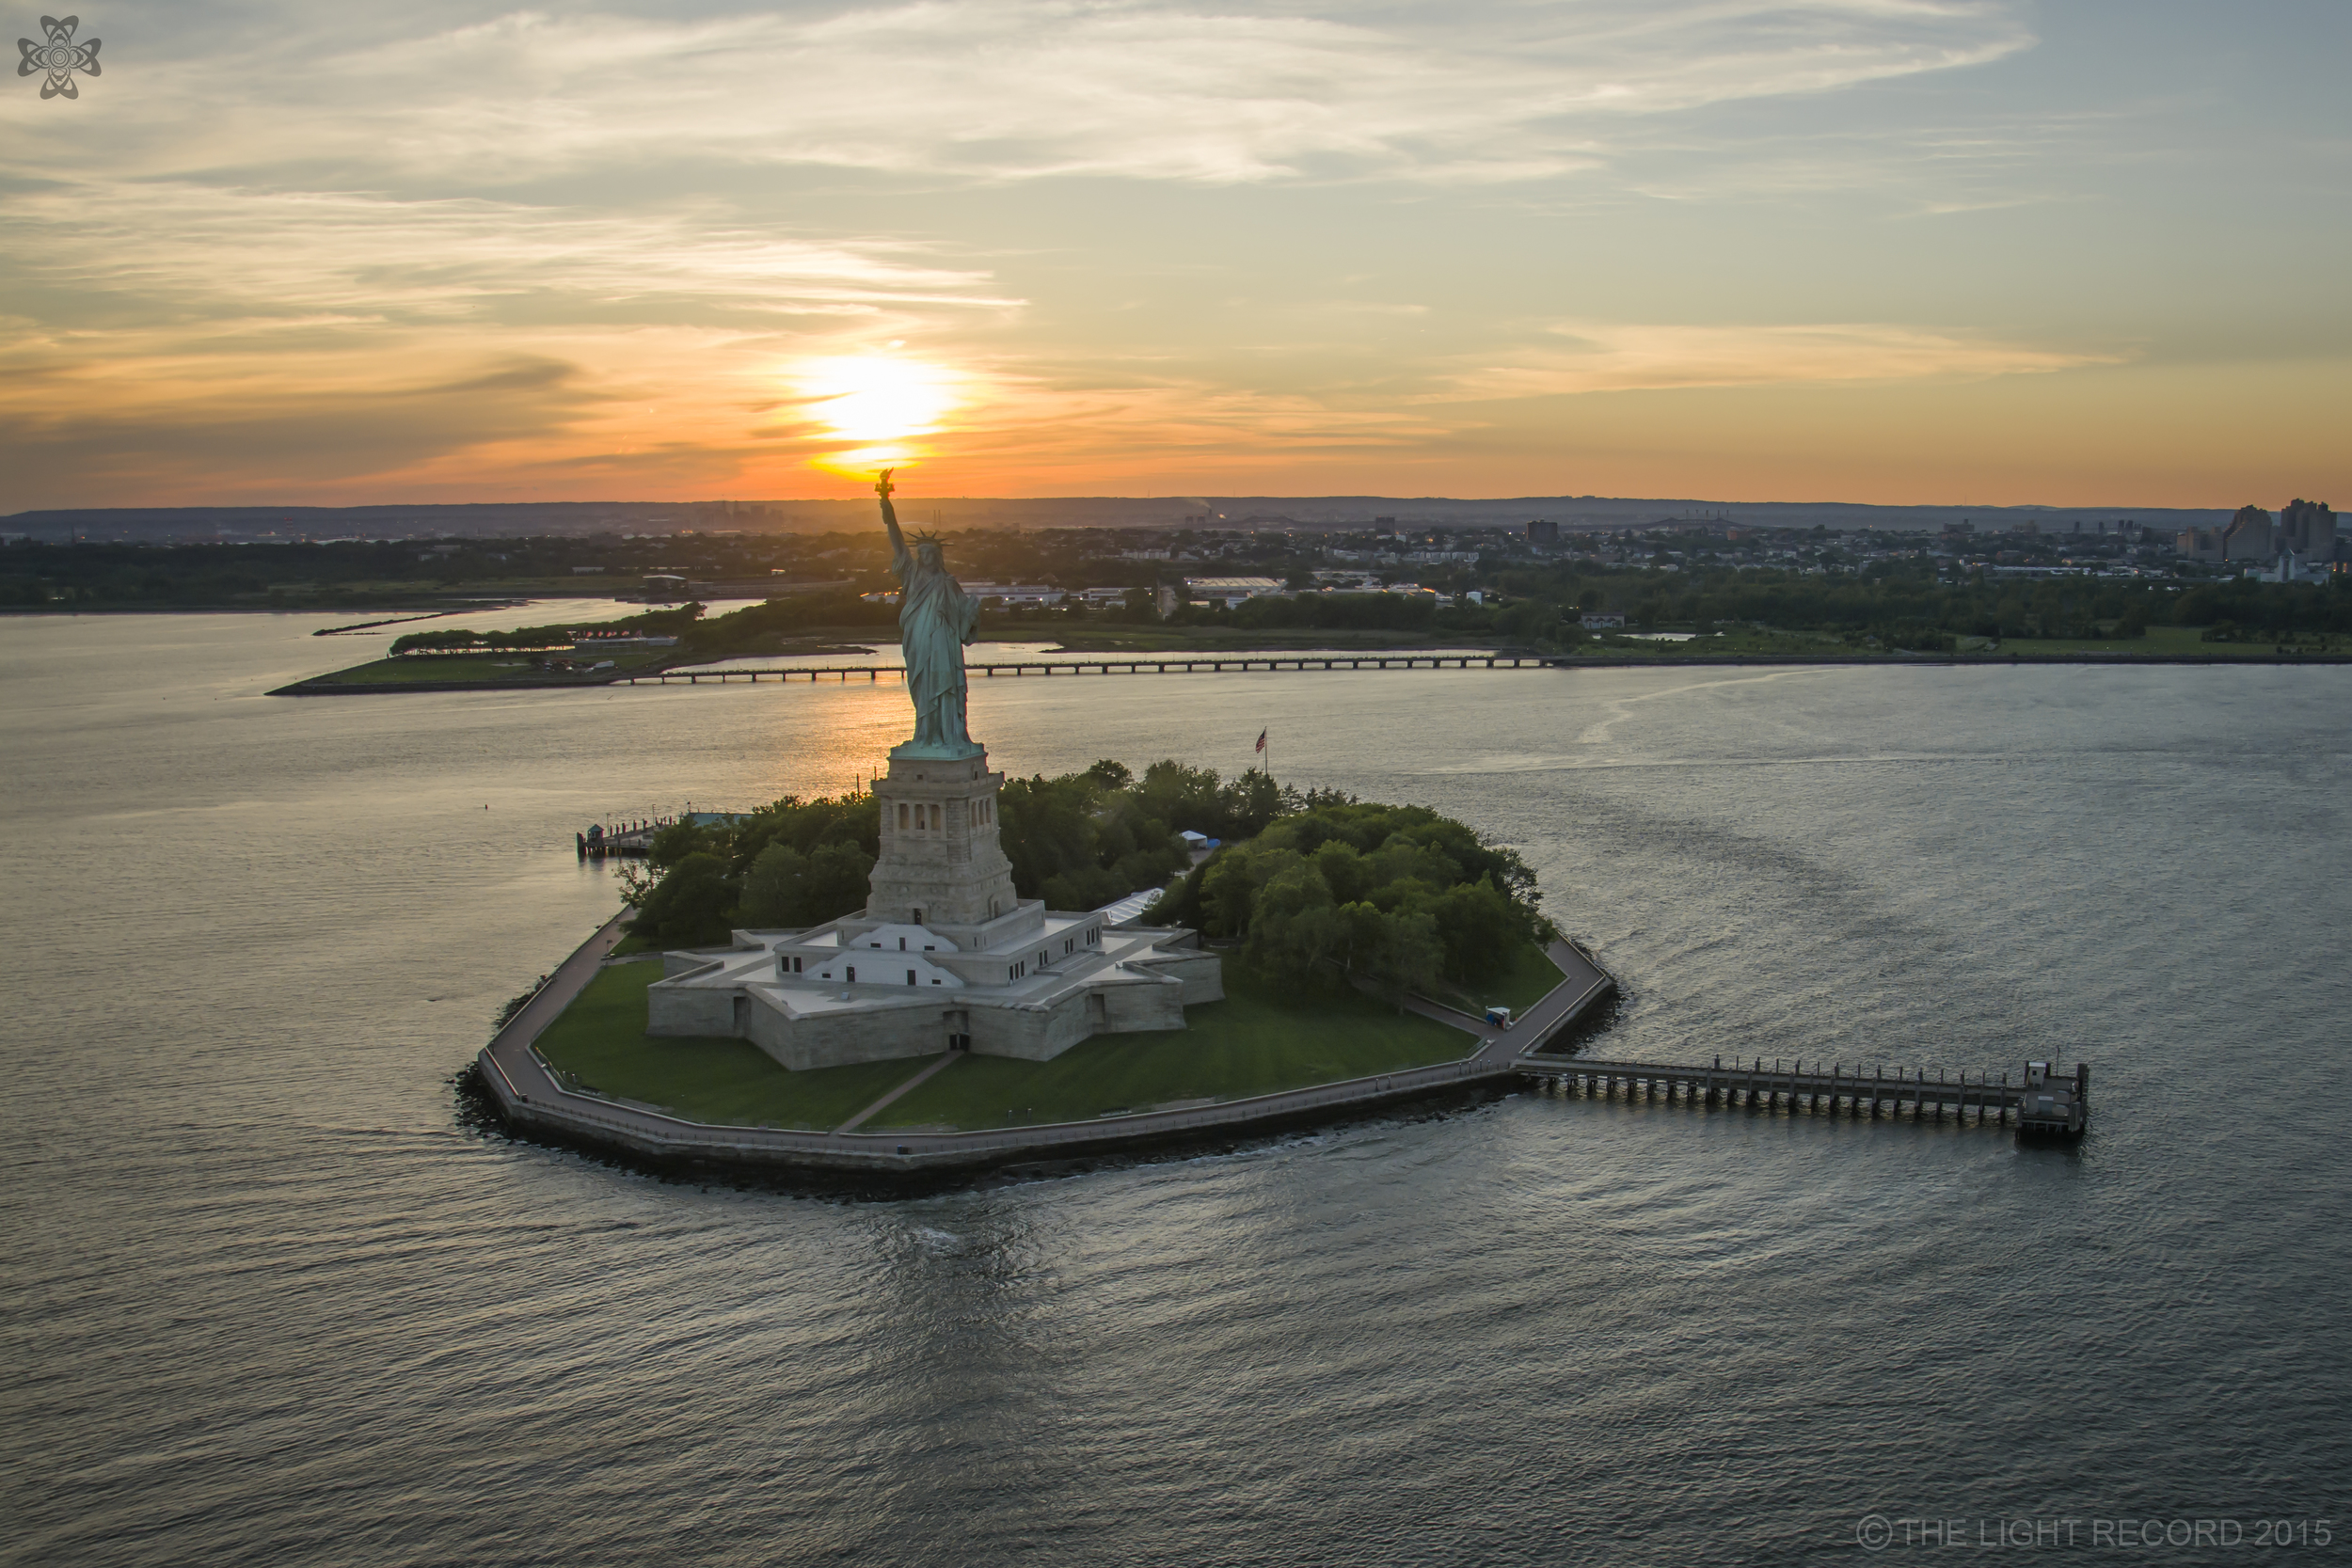 The iconic Statue of Liberty appears to be illuminating the sky above New Jersey. The crown of the statue was closed for nearly 8 years following 9/11 due to safety and security issues. This is as close as I have been since my senior year in high school when I was suspended for drinking Brass Monkey on a field trip.